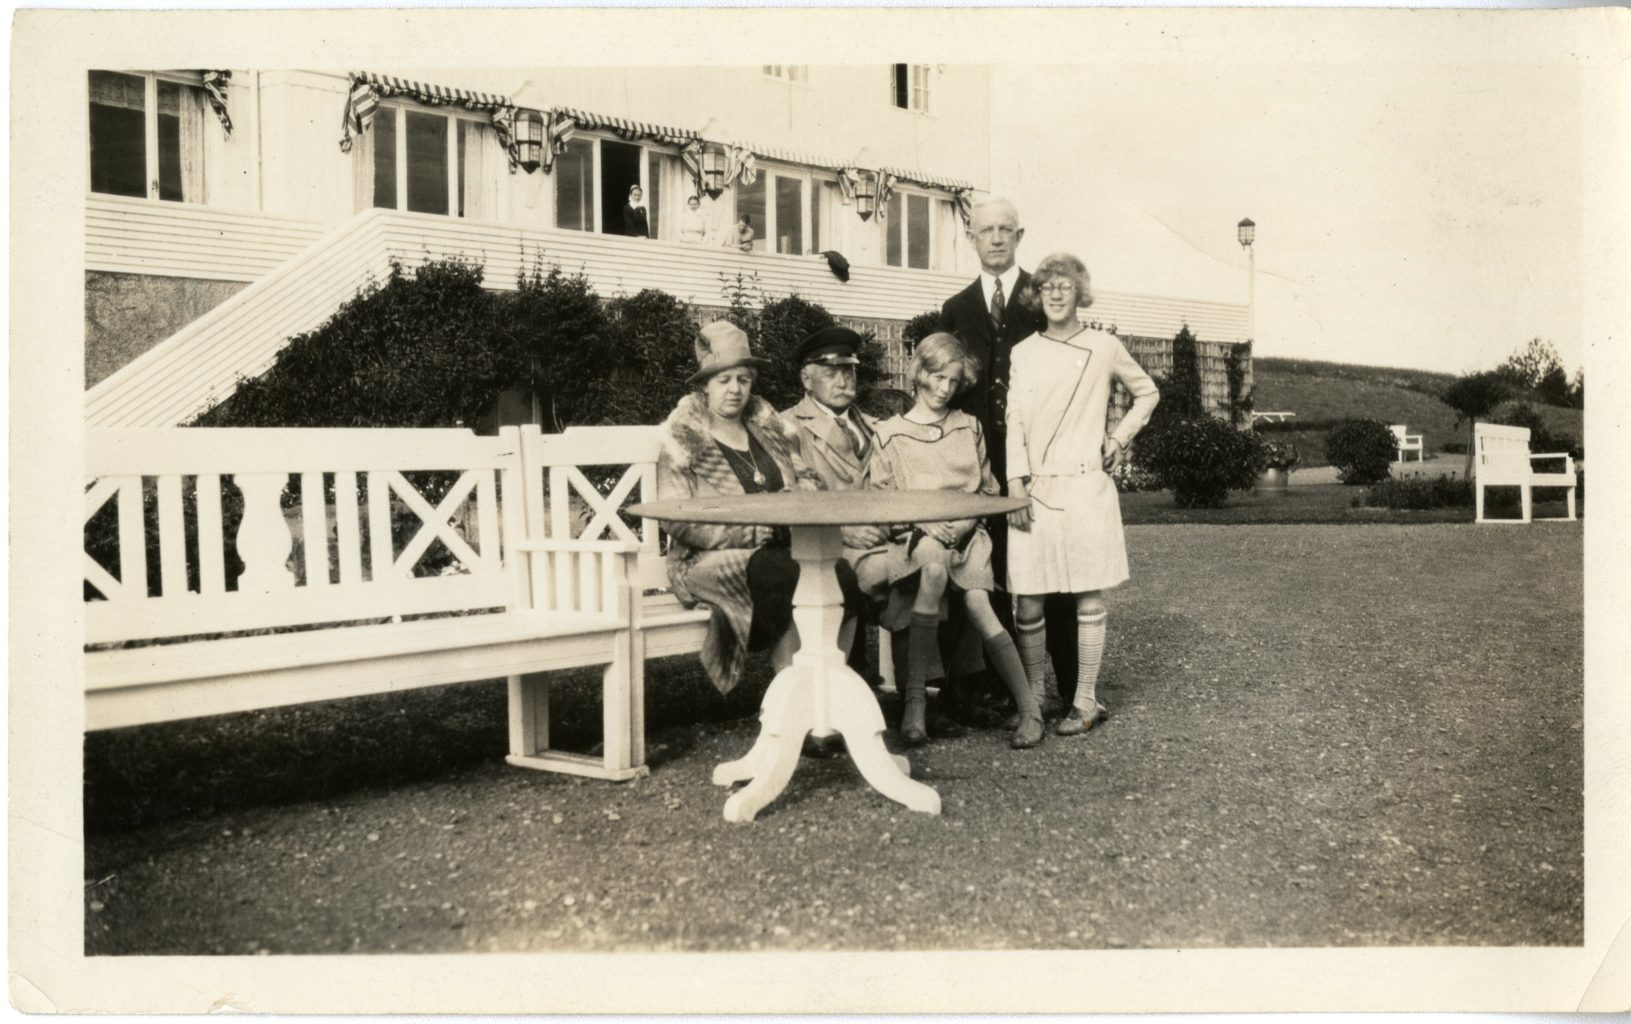 Five individuals outside a house. Three sit on a bench while two stand beside.